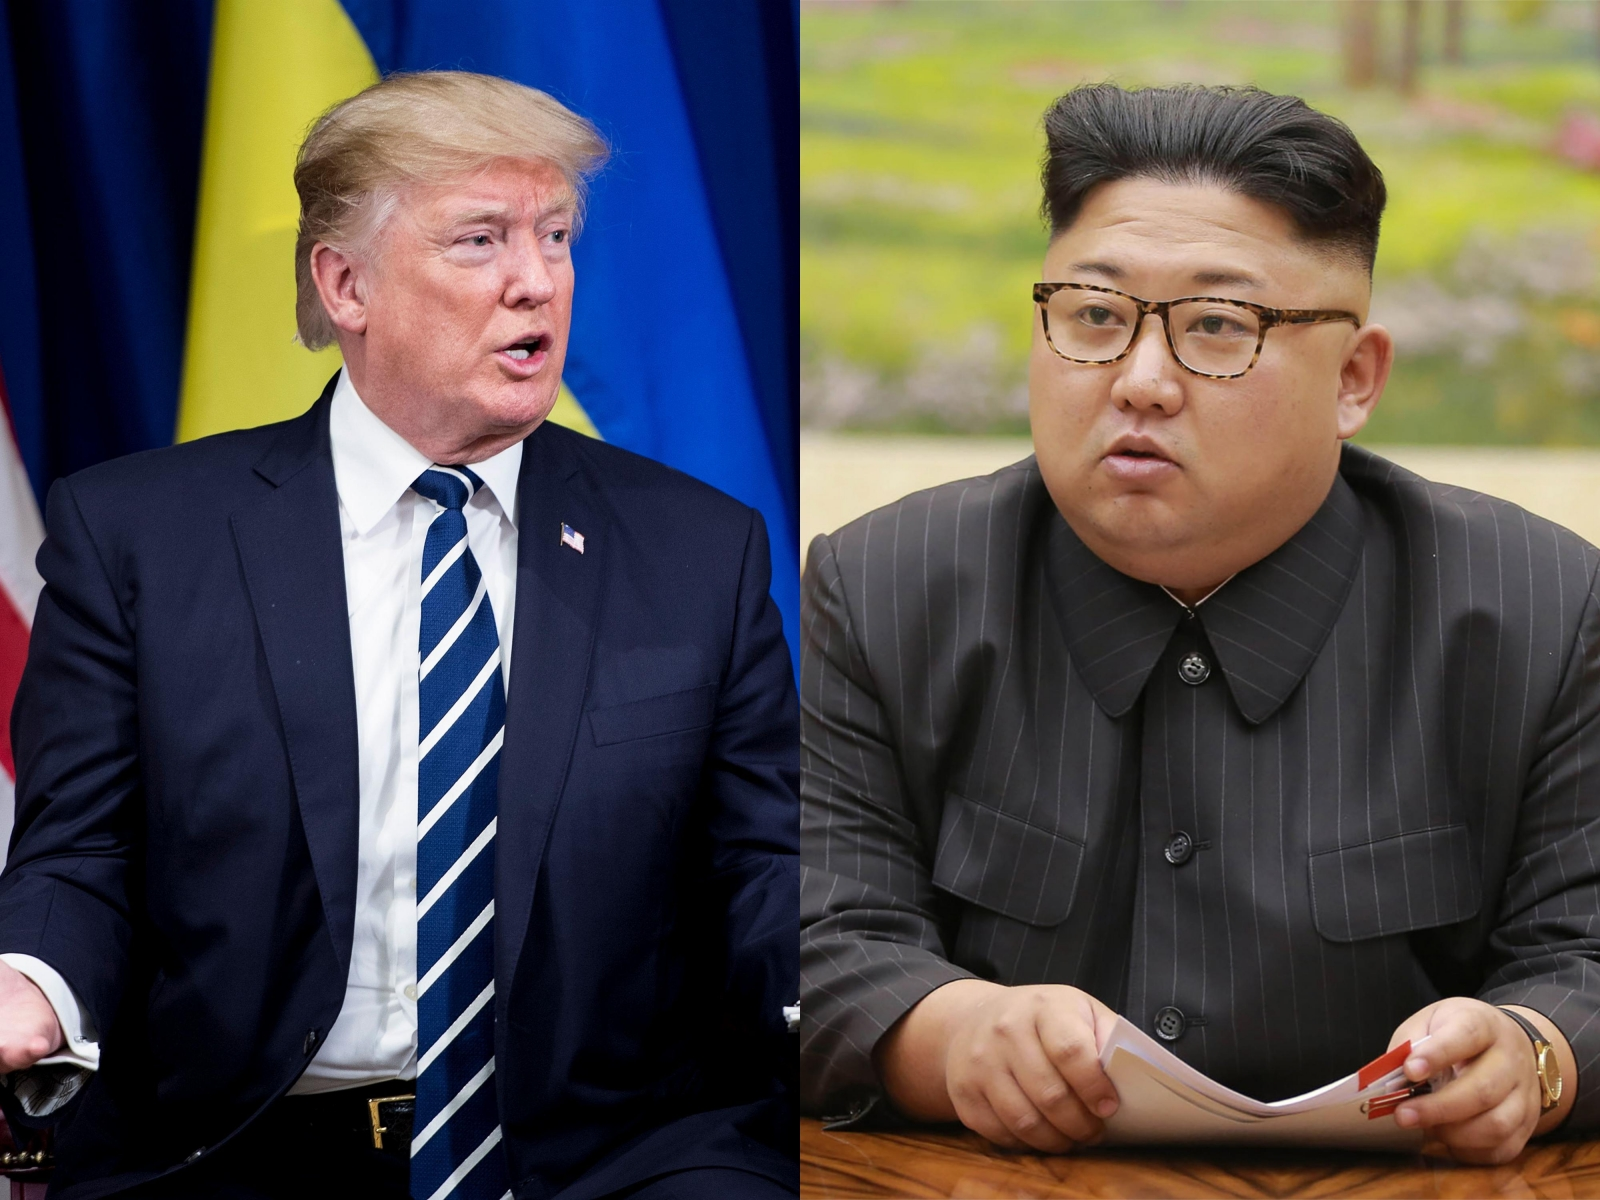 donald-trump-warns-north-korea-of-devastating-consequences-if-u-s-uses-military-option